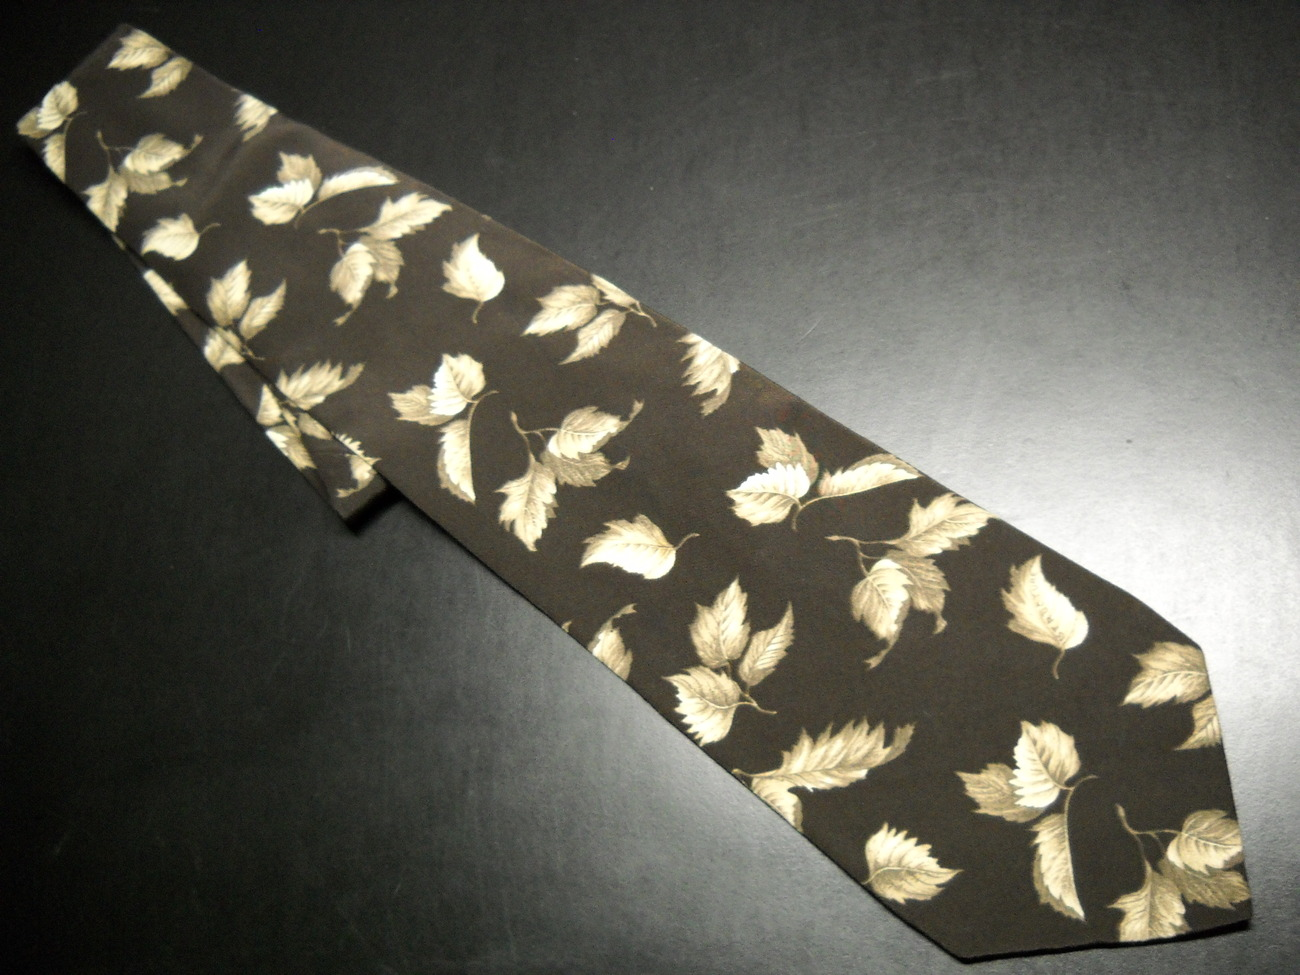 Structure Mens Dress Neck Tie Subdued Brown Monotones of Falling Leaves Silk Structure